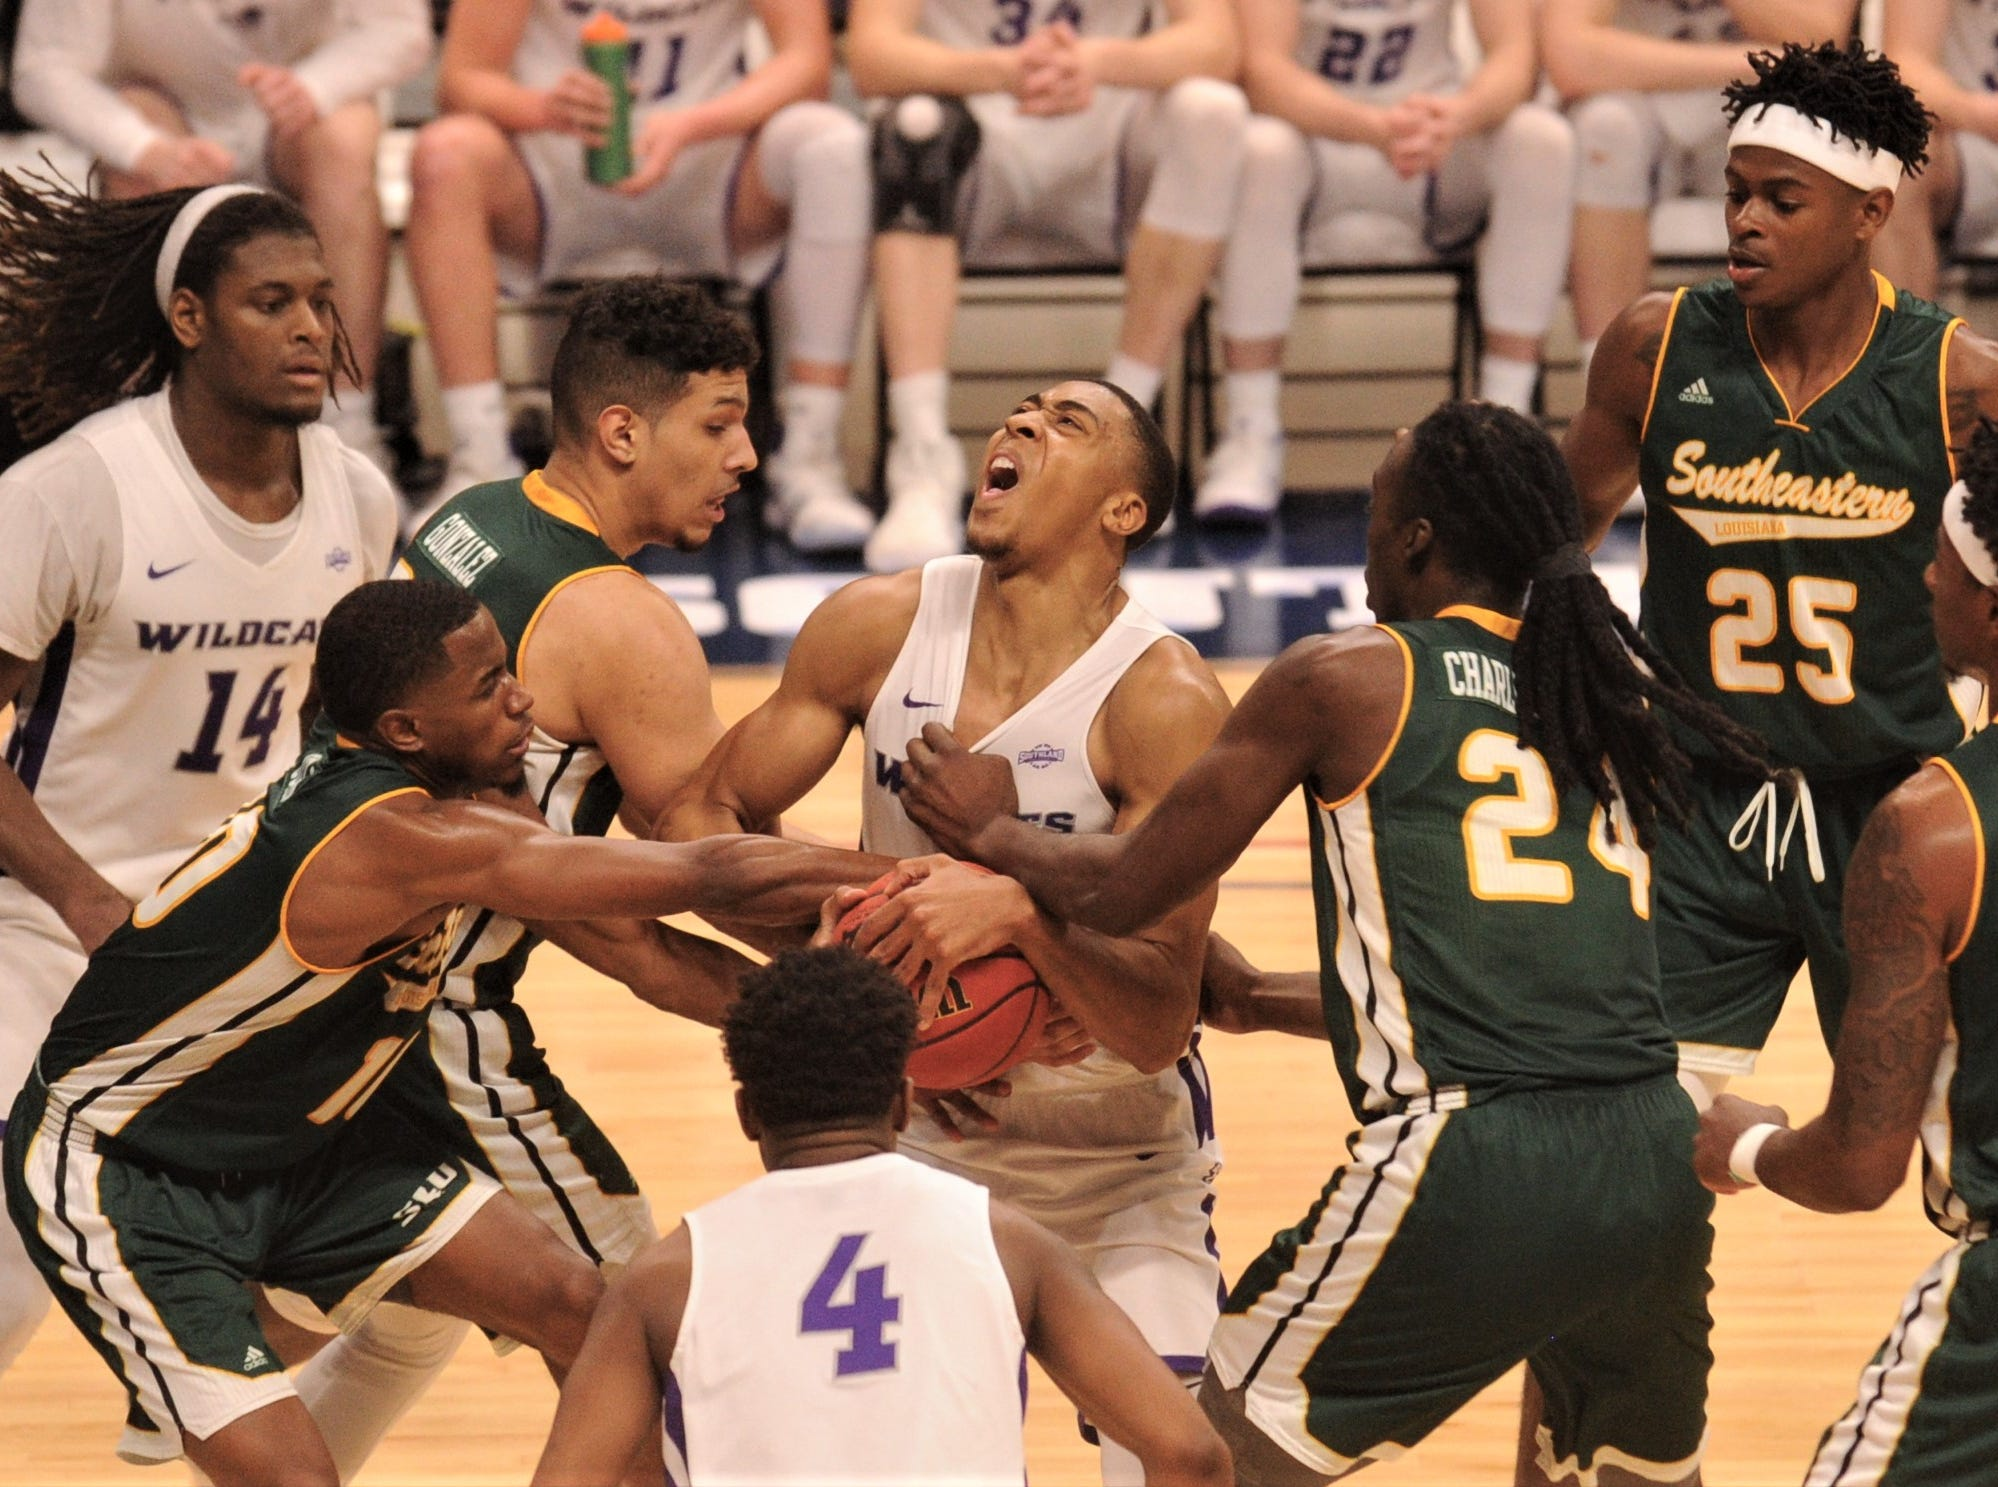 ACU's Jaylen Franklin, center, battles the Southeastern Louisiana defense for an offensive rebound. Franklin came down with the ball and was fouled on the play in the second half. The Wildcats beat Southeastern Louisiana 69-66 in the Southland Conference Tournament semifinals Friday, March 15, 2019, at the Merrell Center in Katy.